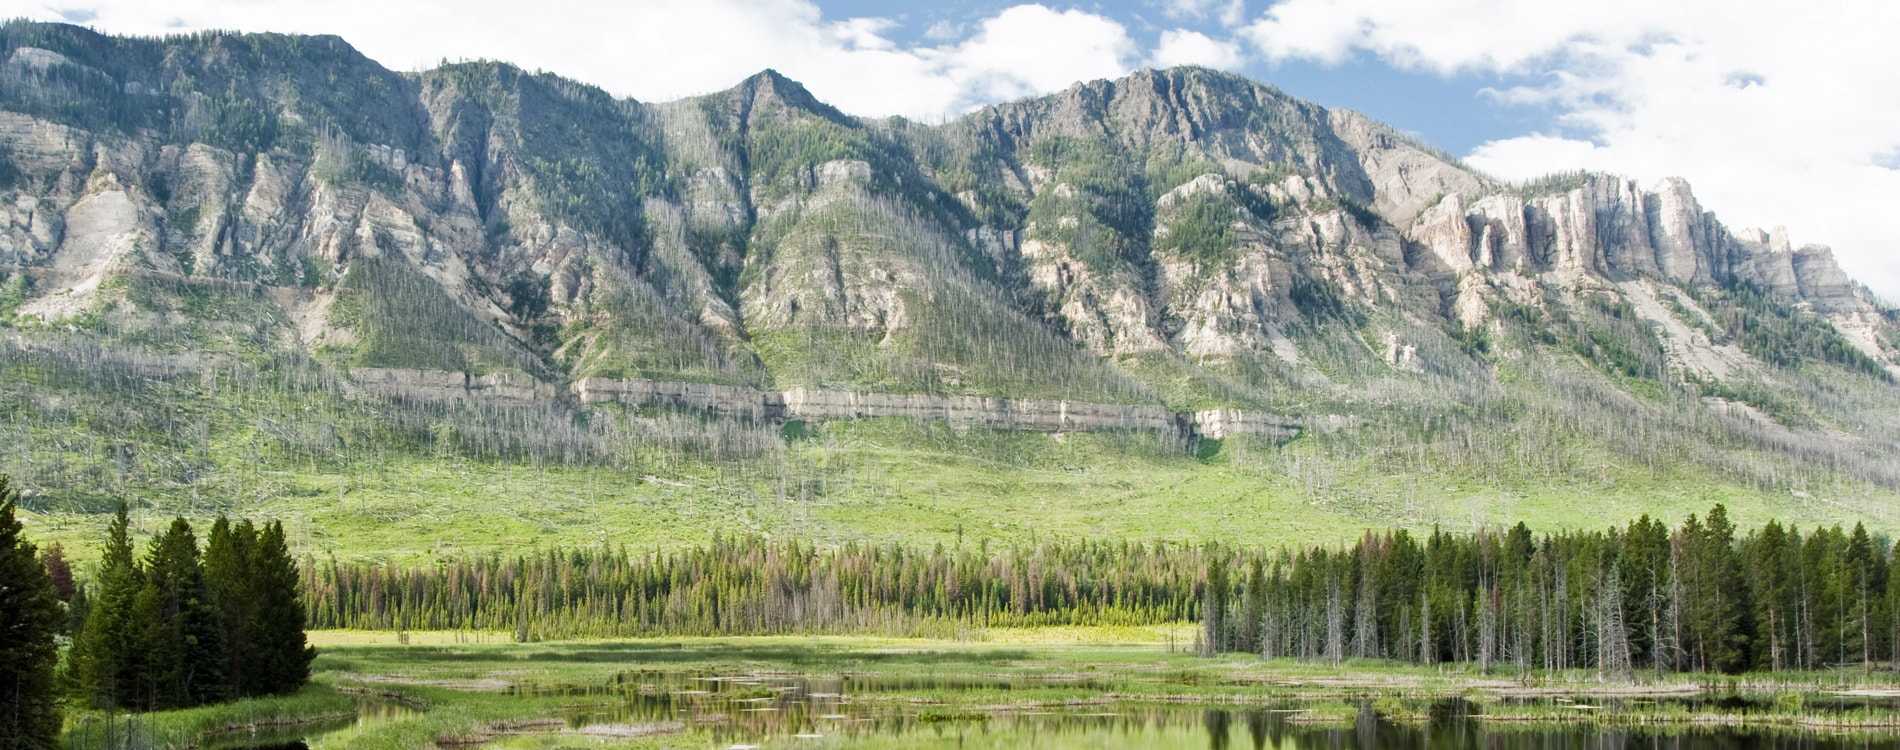 Shoshone National Forest along Chief Joseph Scenic Byway